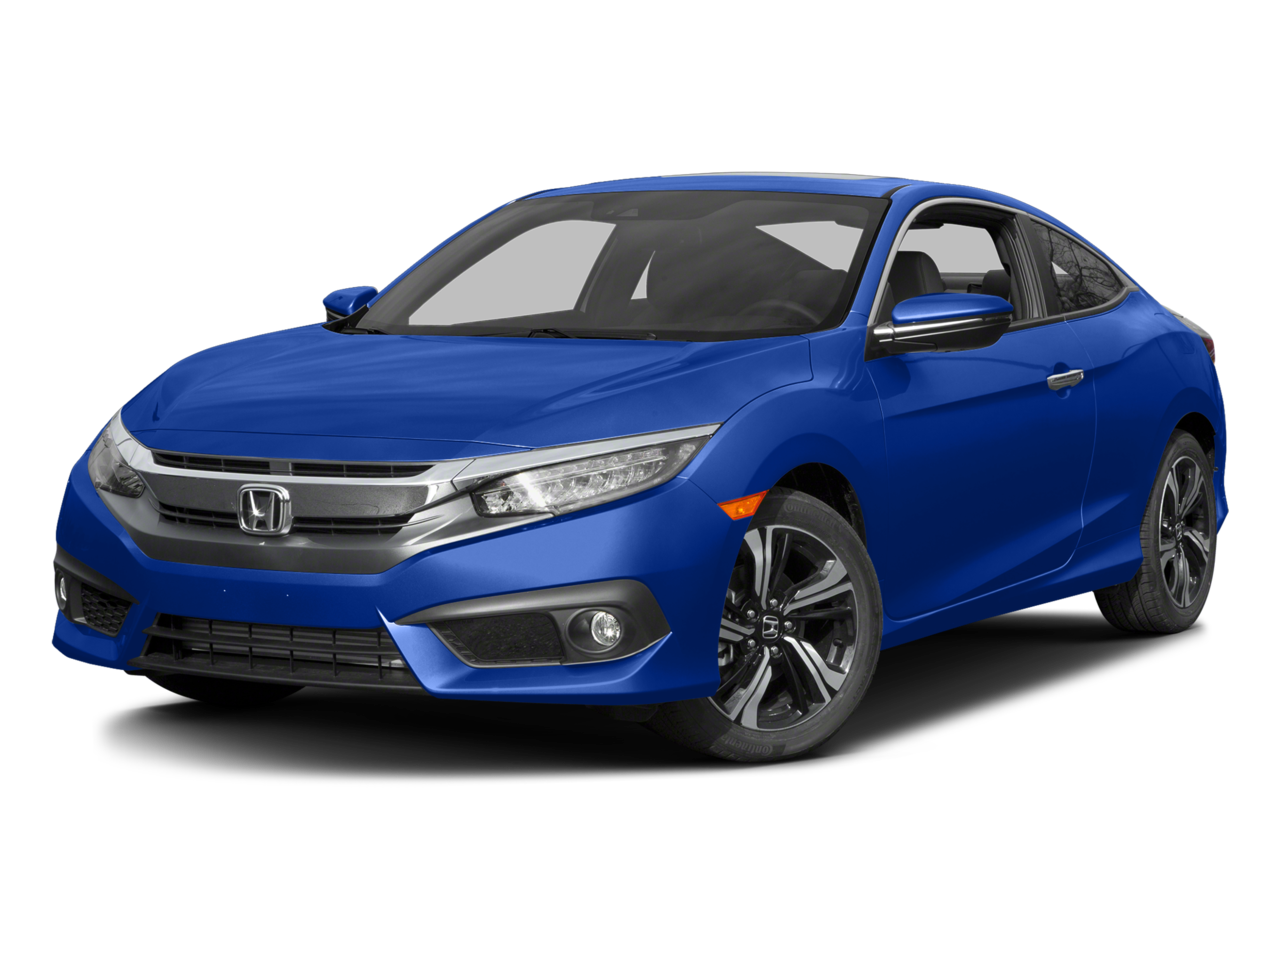 2016 Honda Civic Coupe - Fort Smith, AR